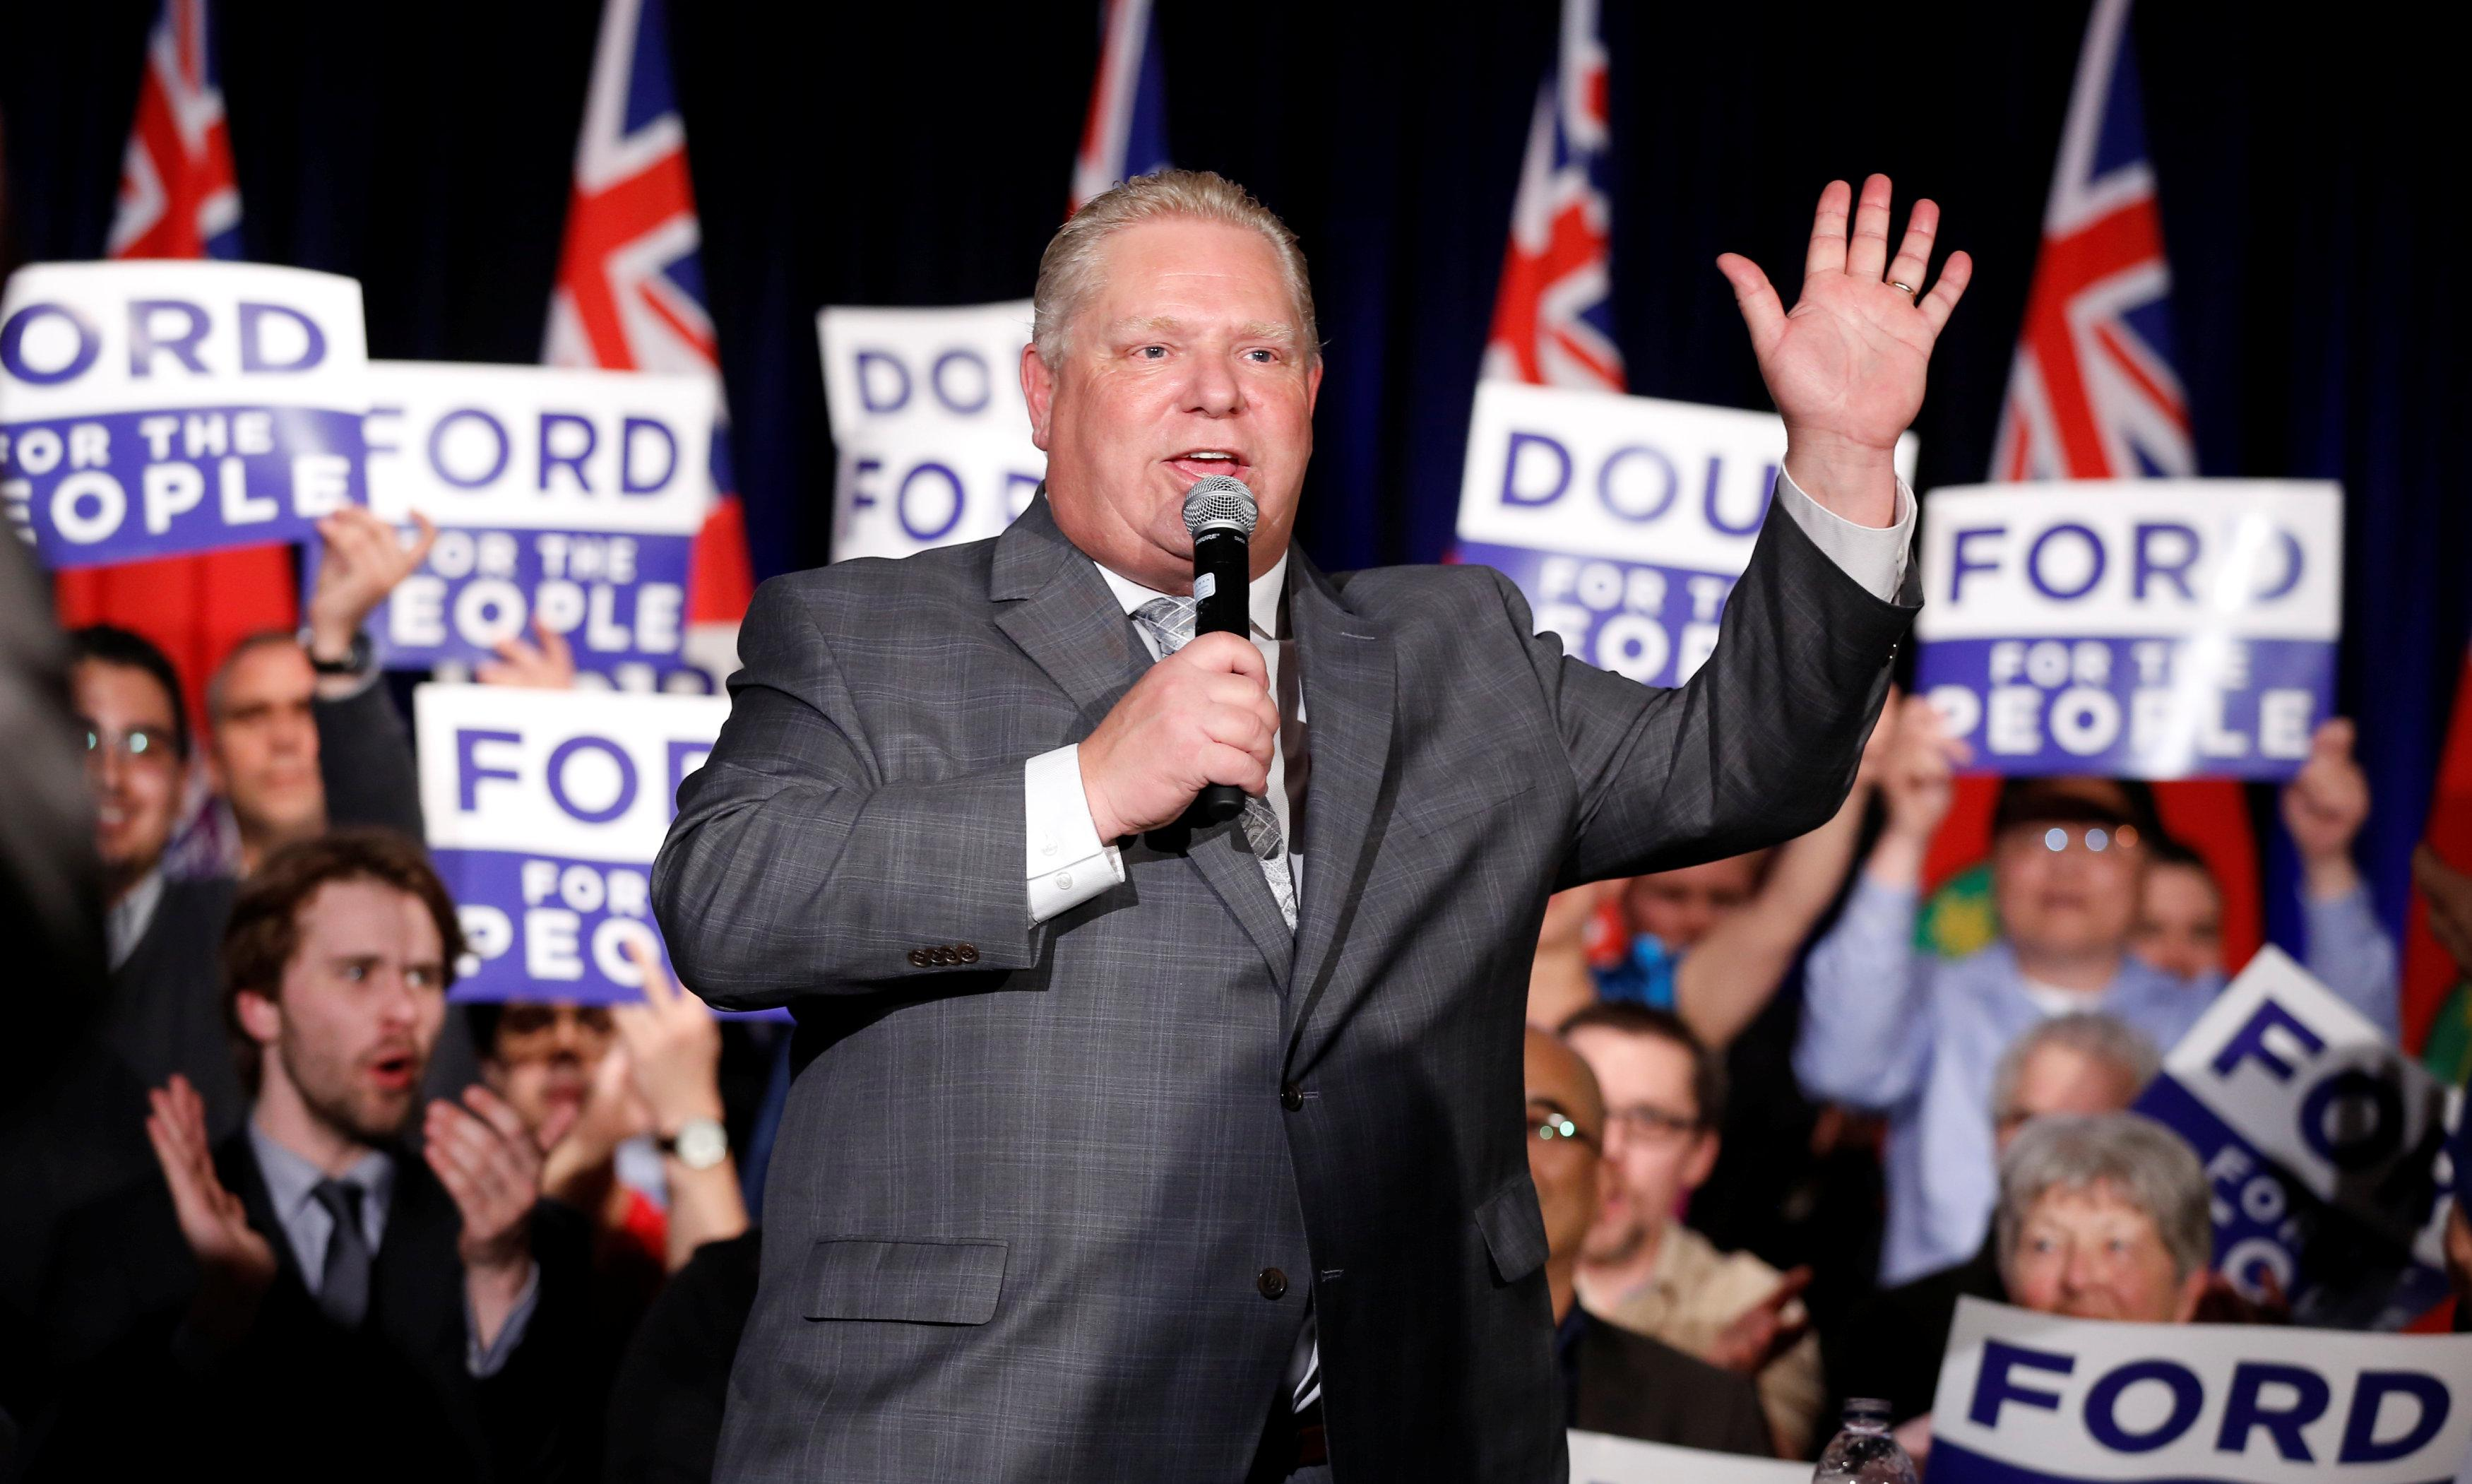 Doug Ford reveals Canadian right's disdain for constitutional norms